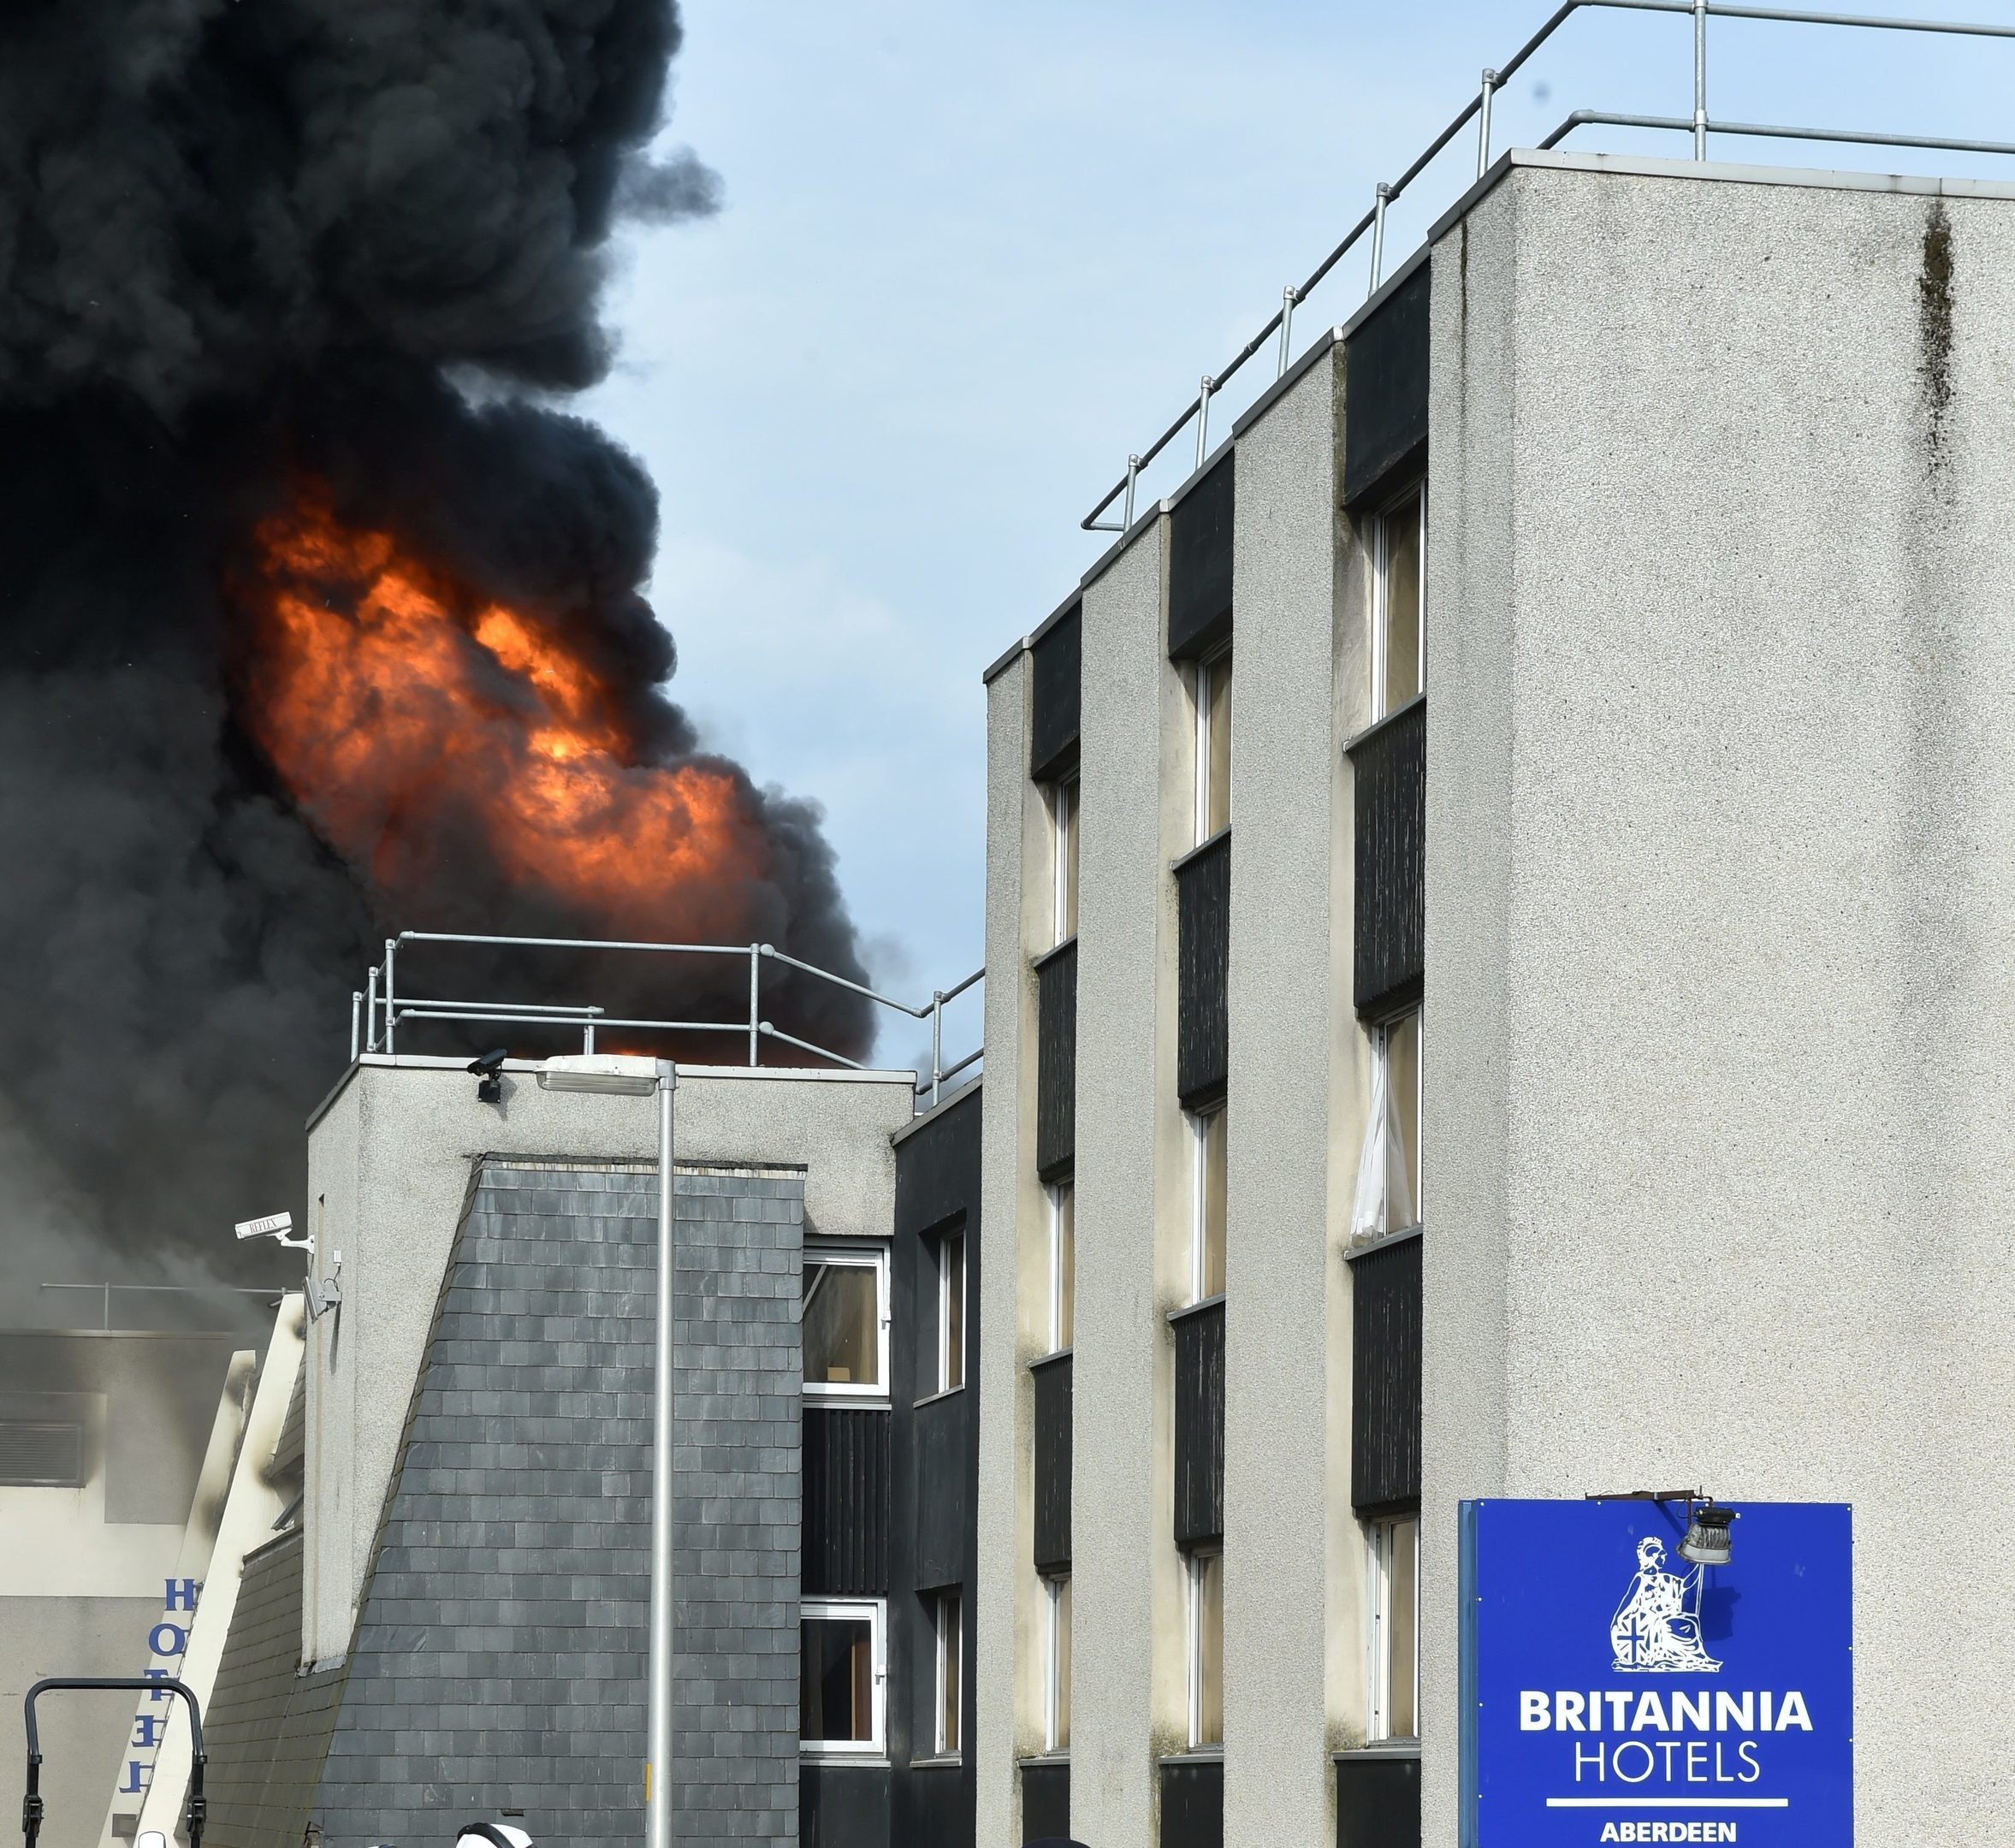 Britiania hotel Fire. Picture by Colin Rennie